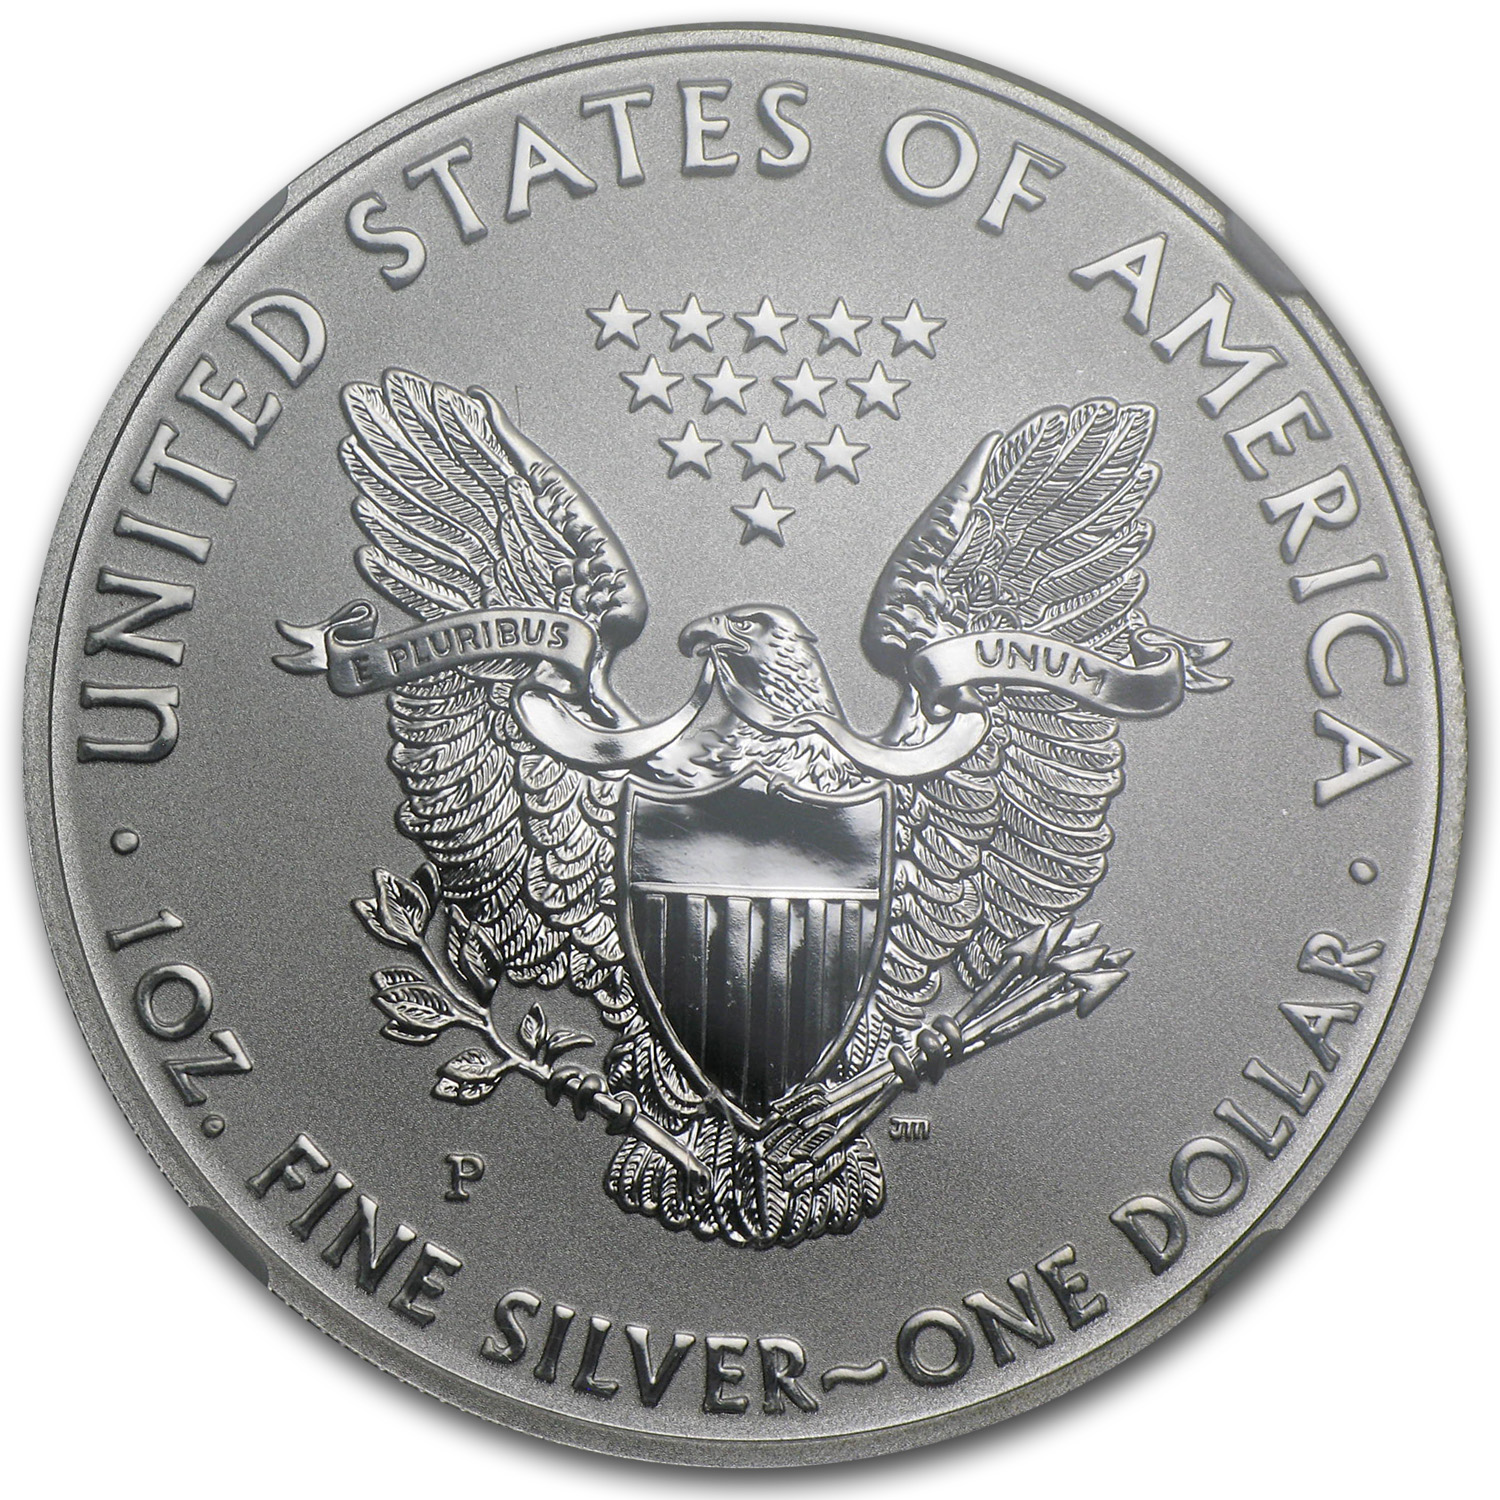 2011-P (Reverse Proof) Silver Eagle PF-69 25th Anniversary